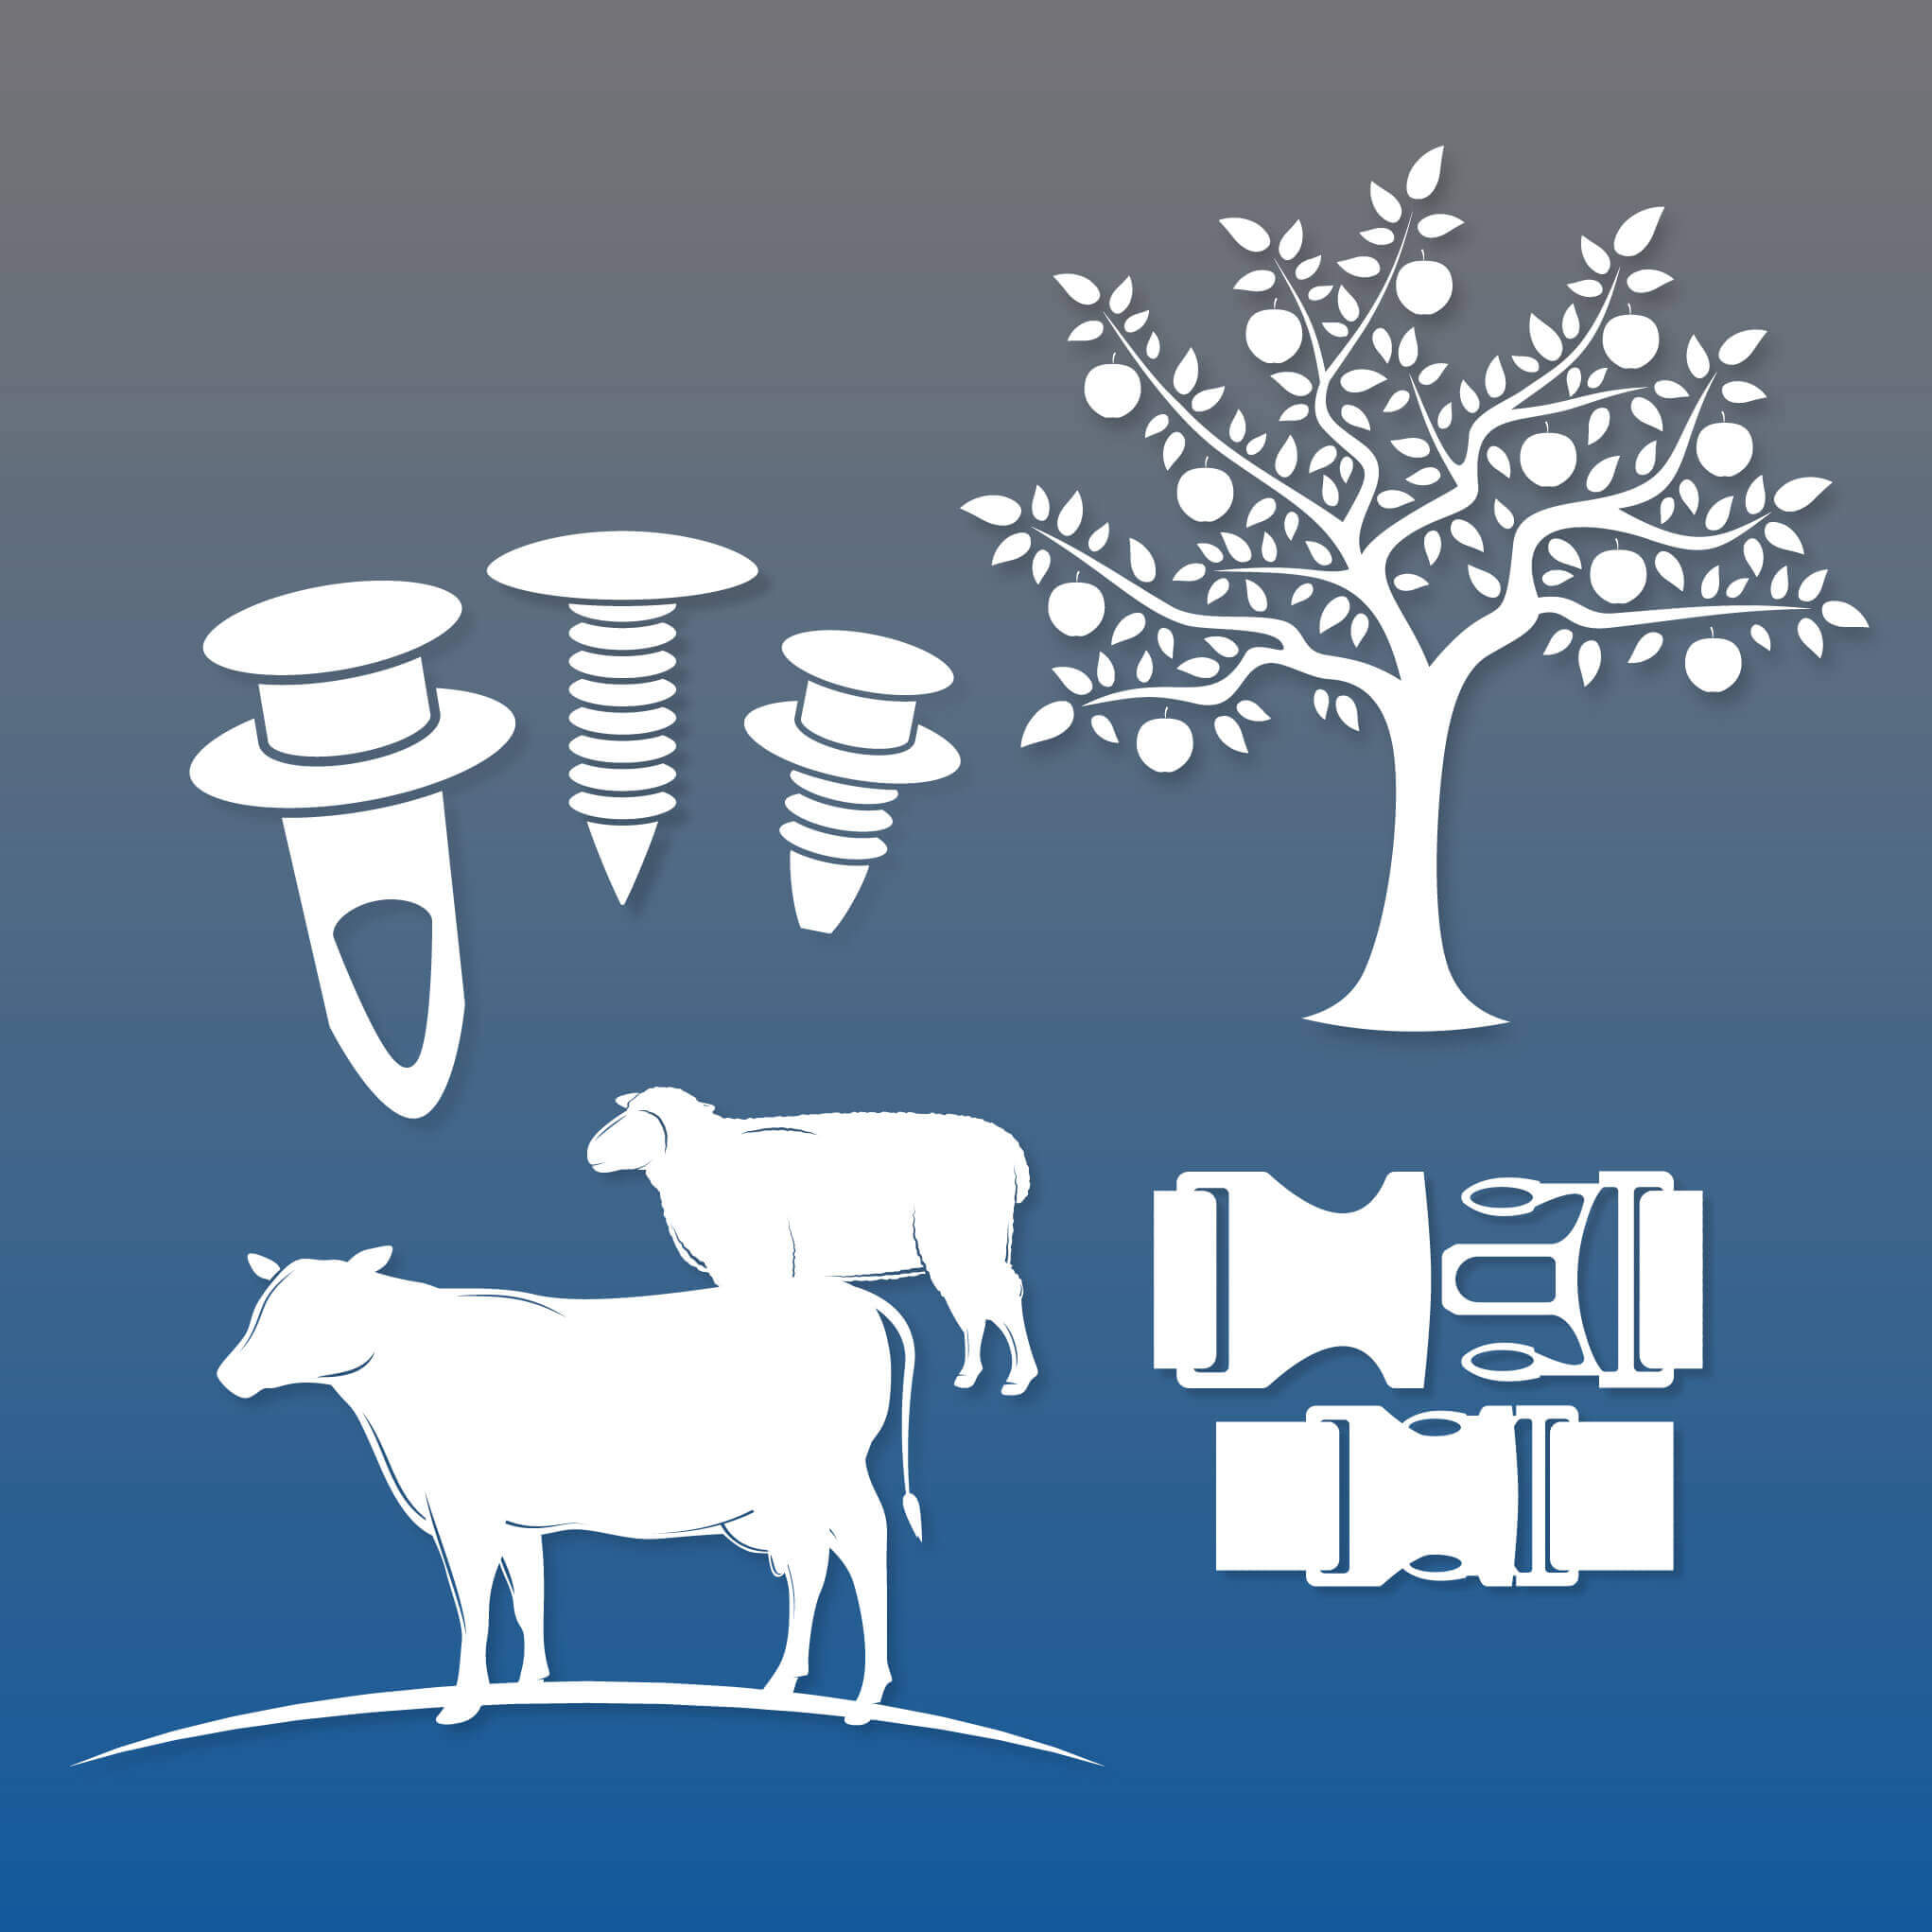 clips, grommets, fruit trees and cows icons